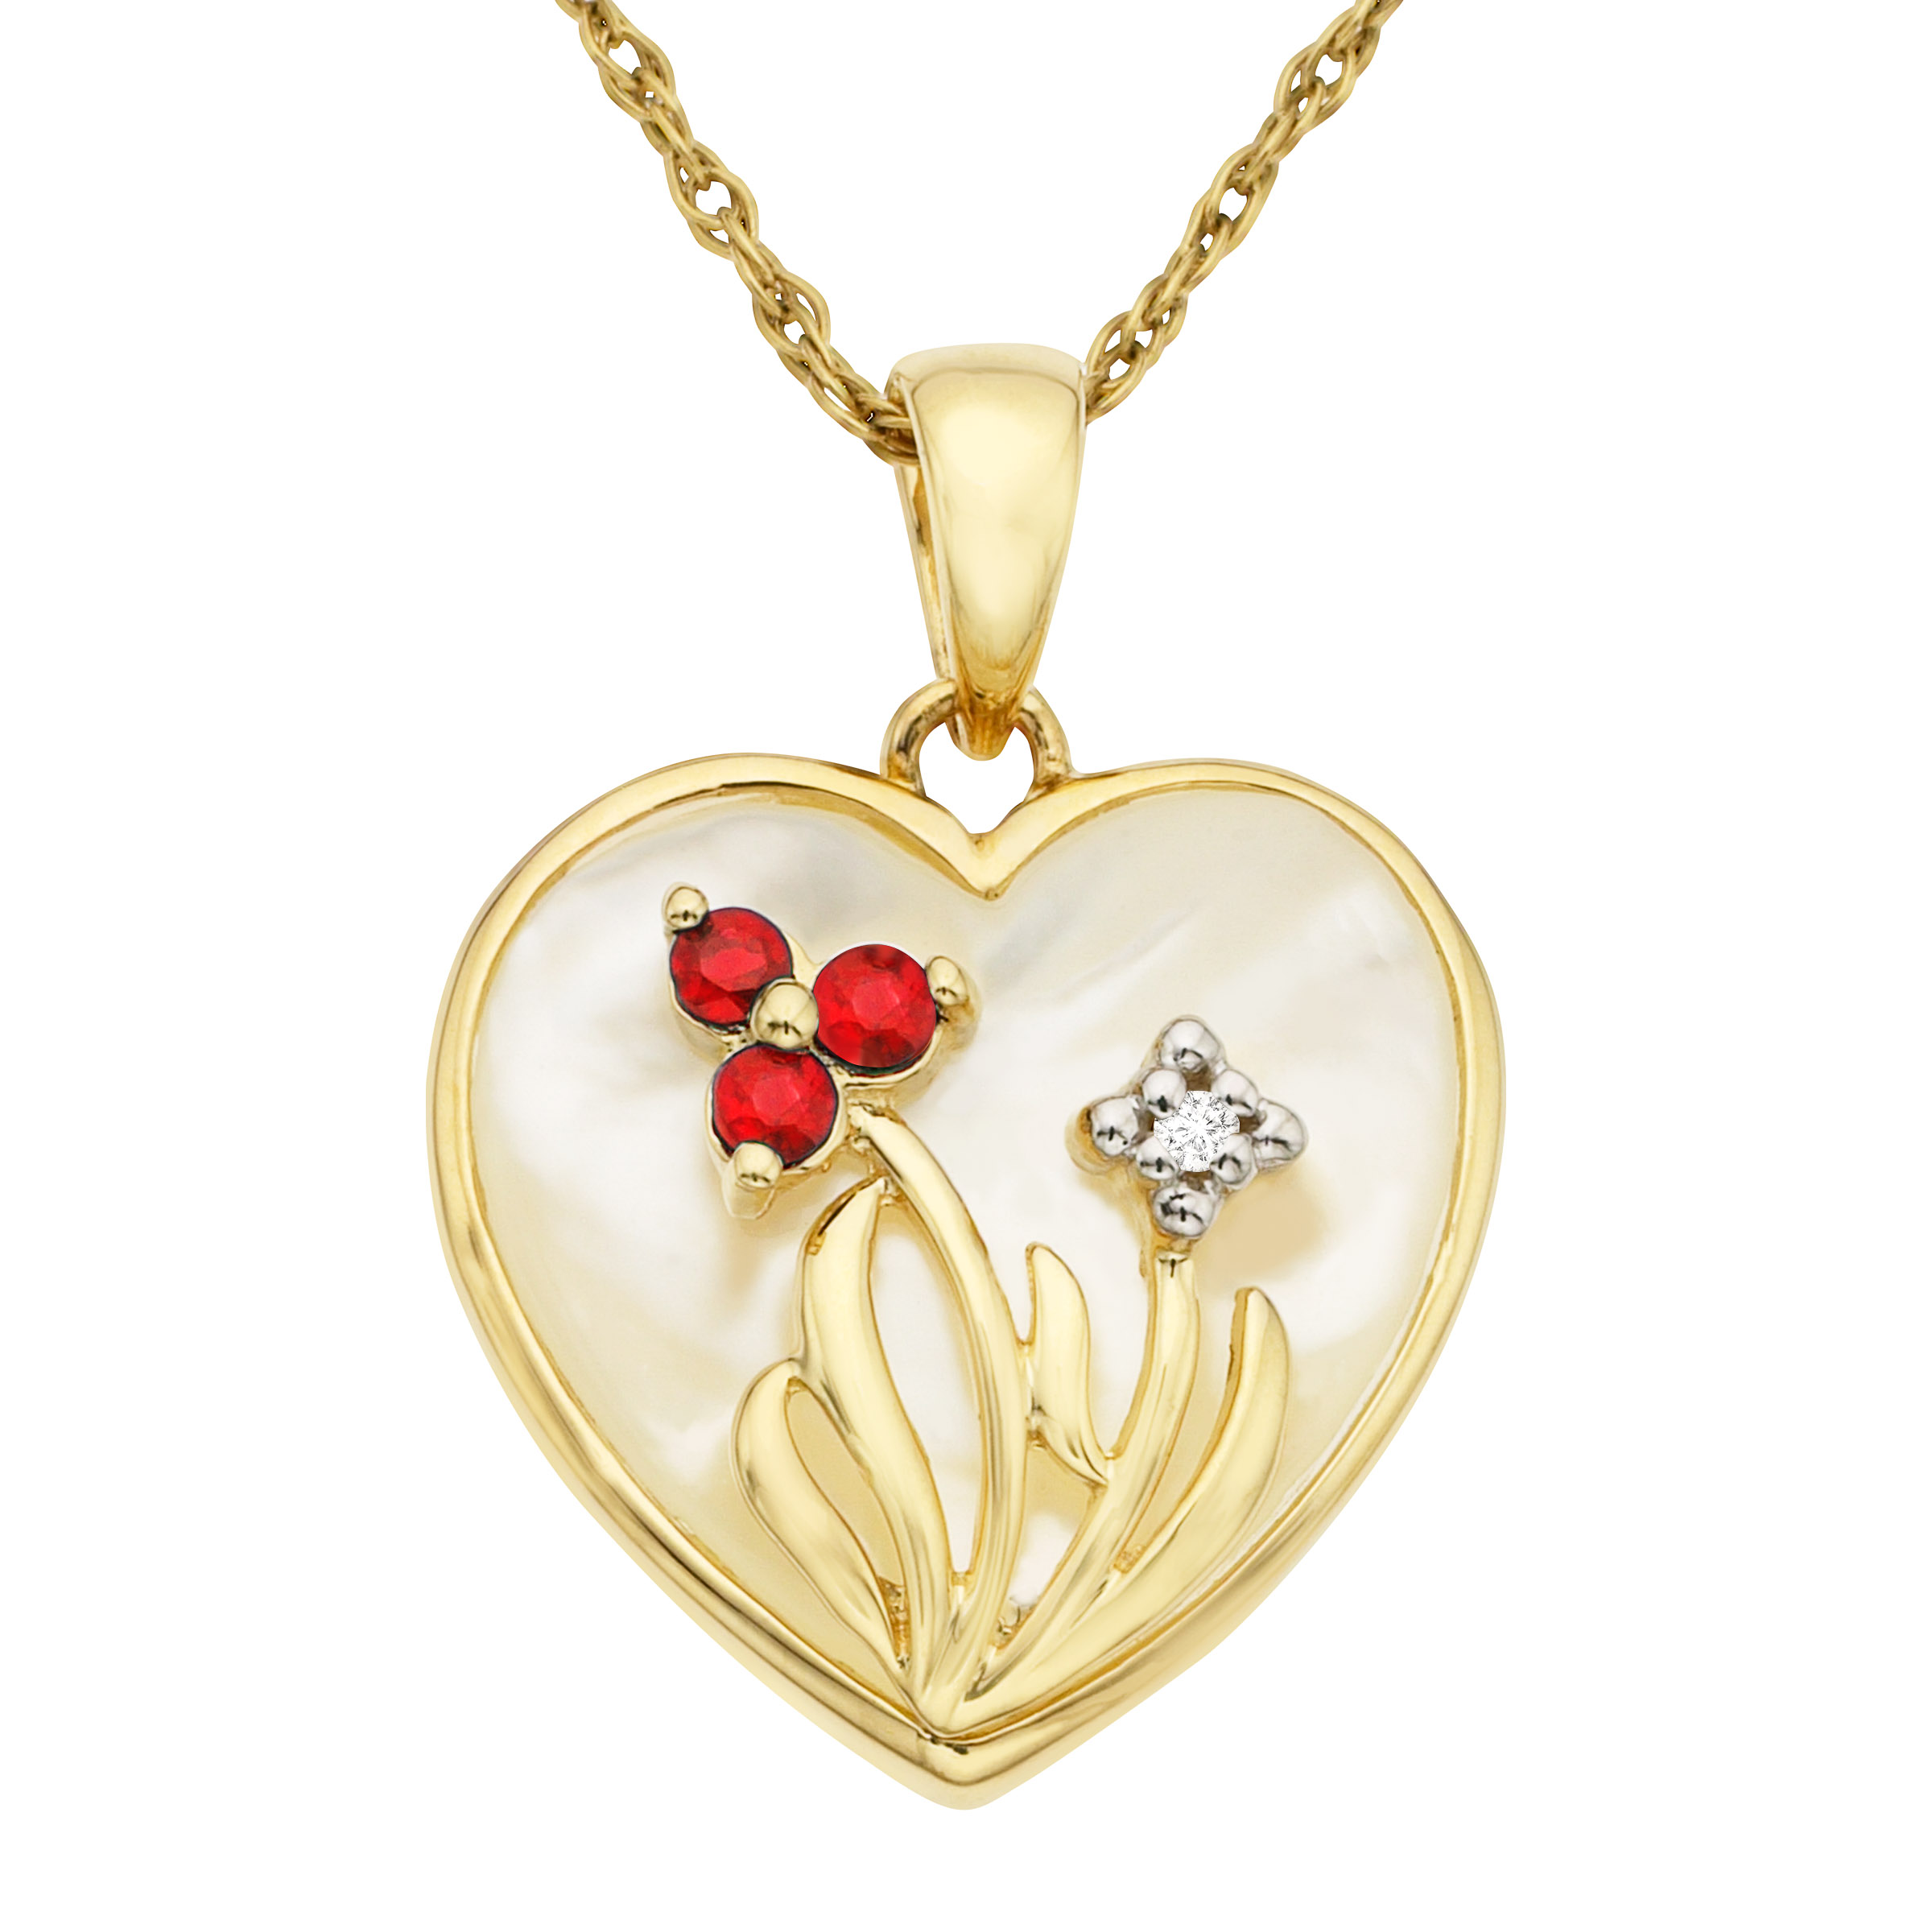 Natural Mother-of-Pearl Heart Pendant Necklace with Rubies and Diamonds in 10kt Gold by Richline Group